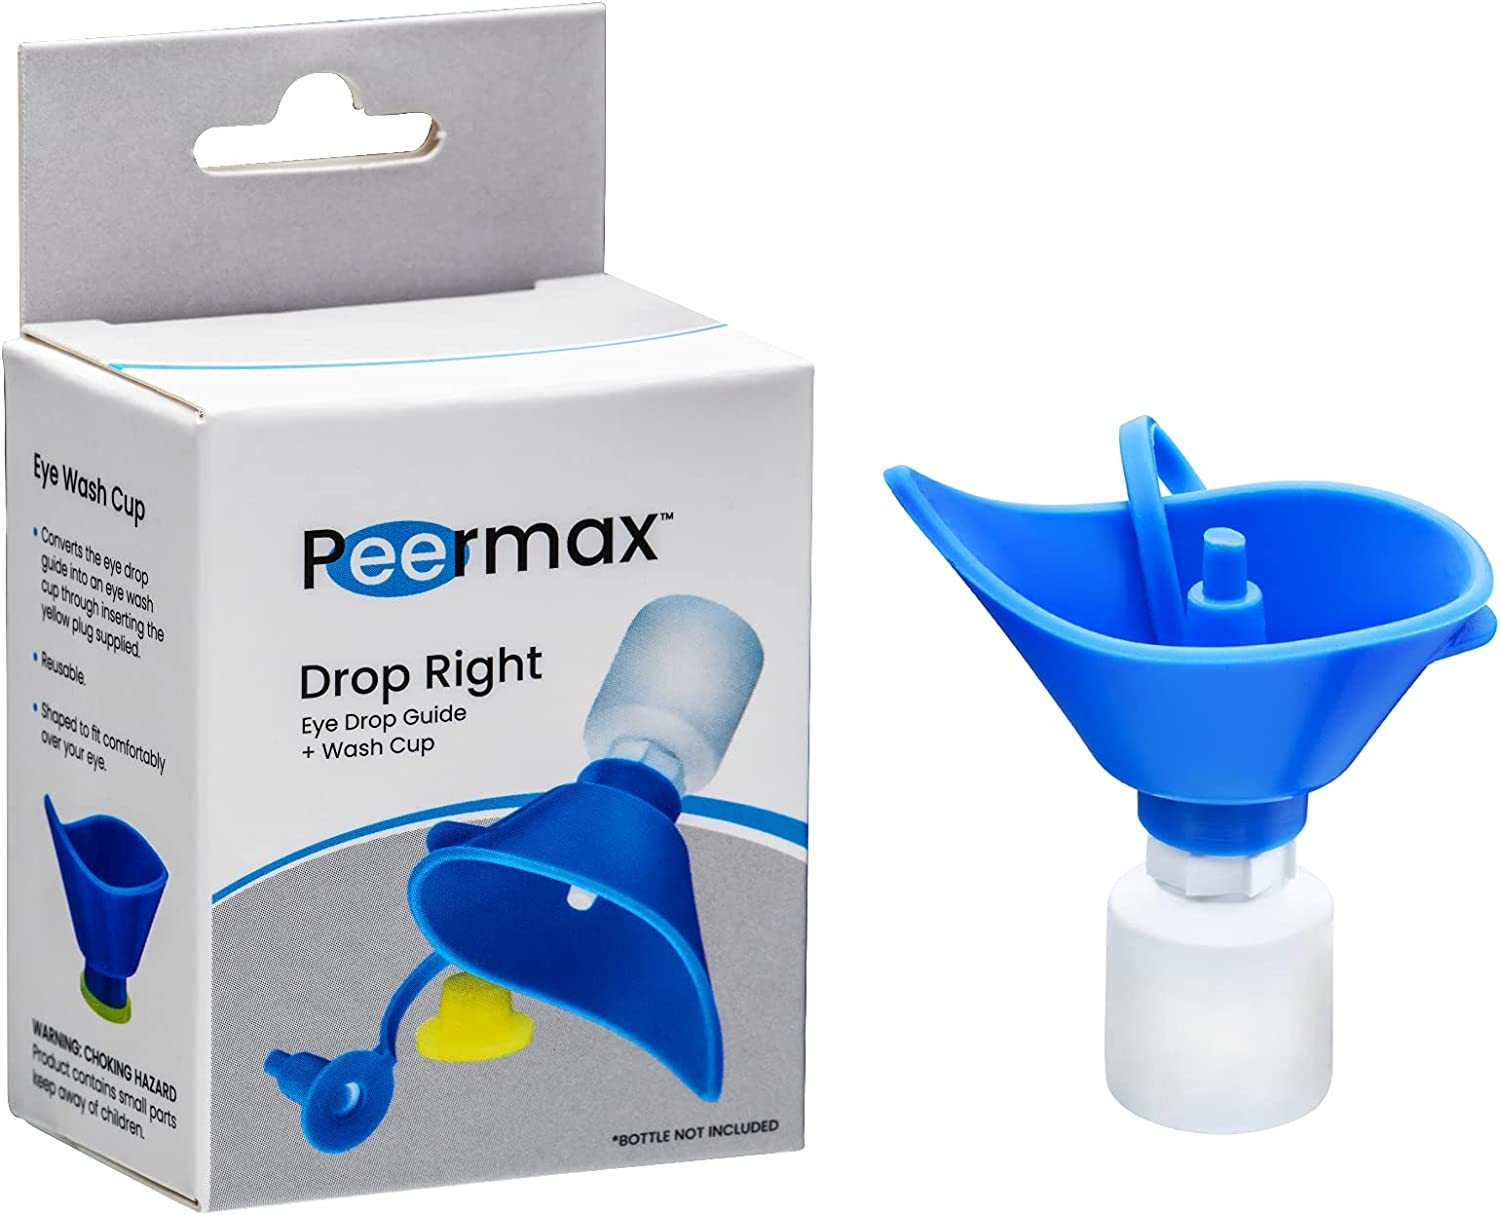 Peermax Drop Right 2 in 1 Eye wi Ultra-Cheap Deals Cup Free shipping on posting reviews Guide Works + Wash